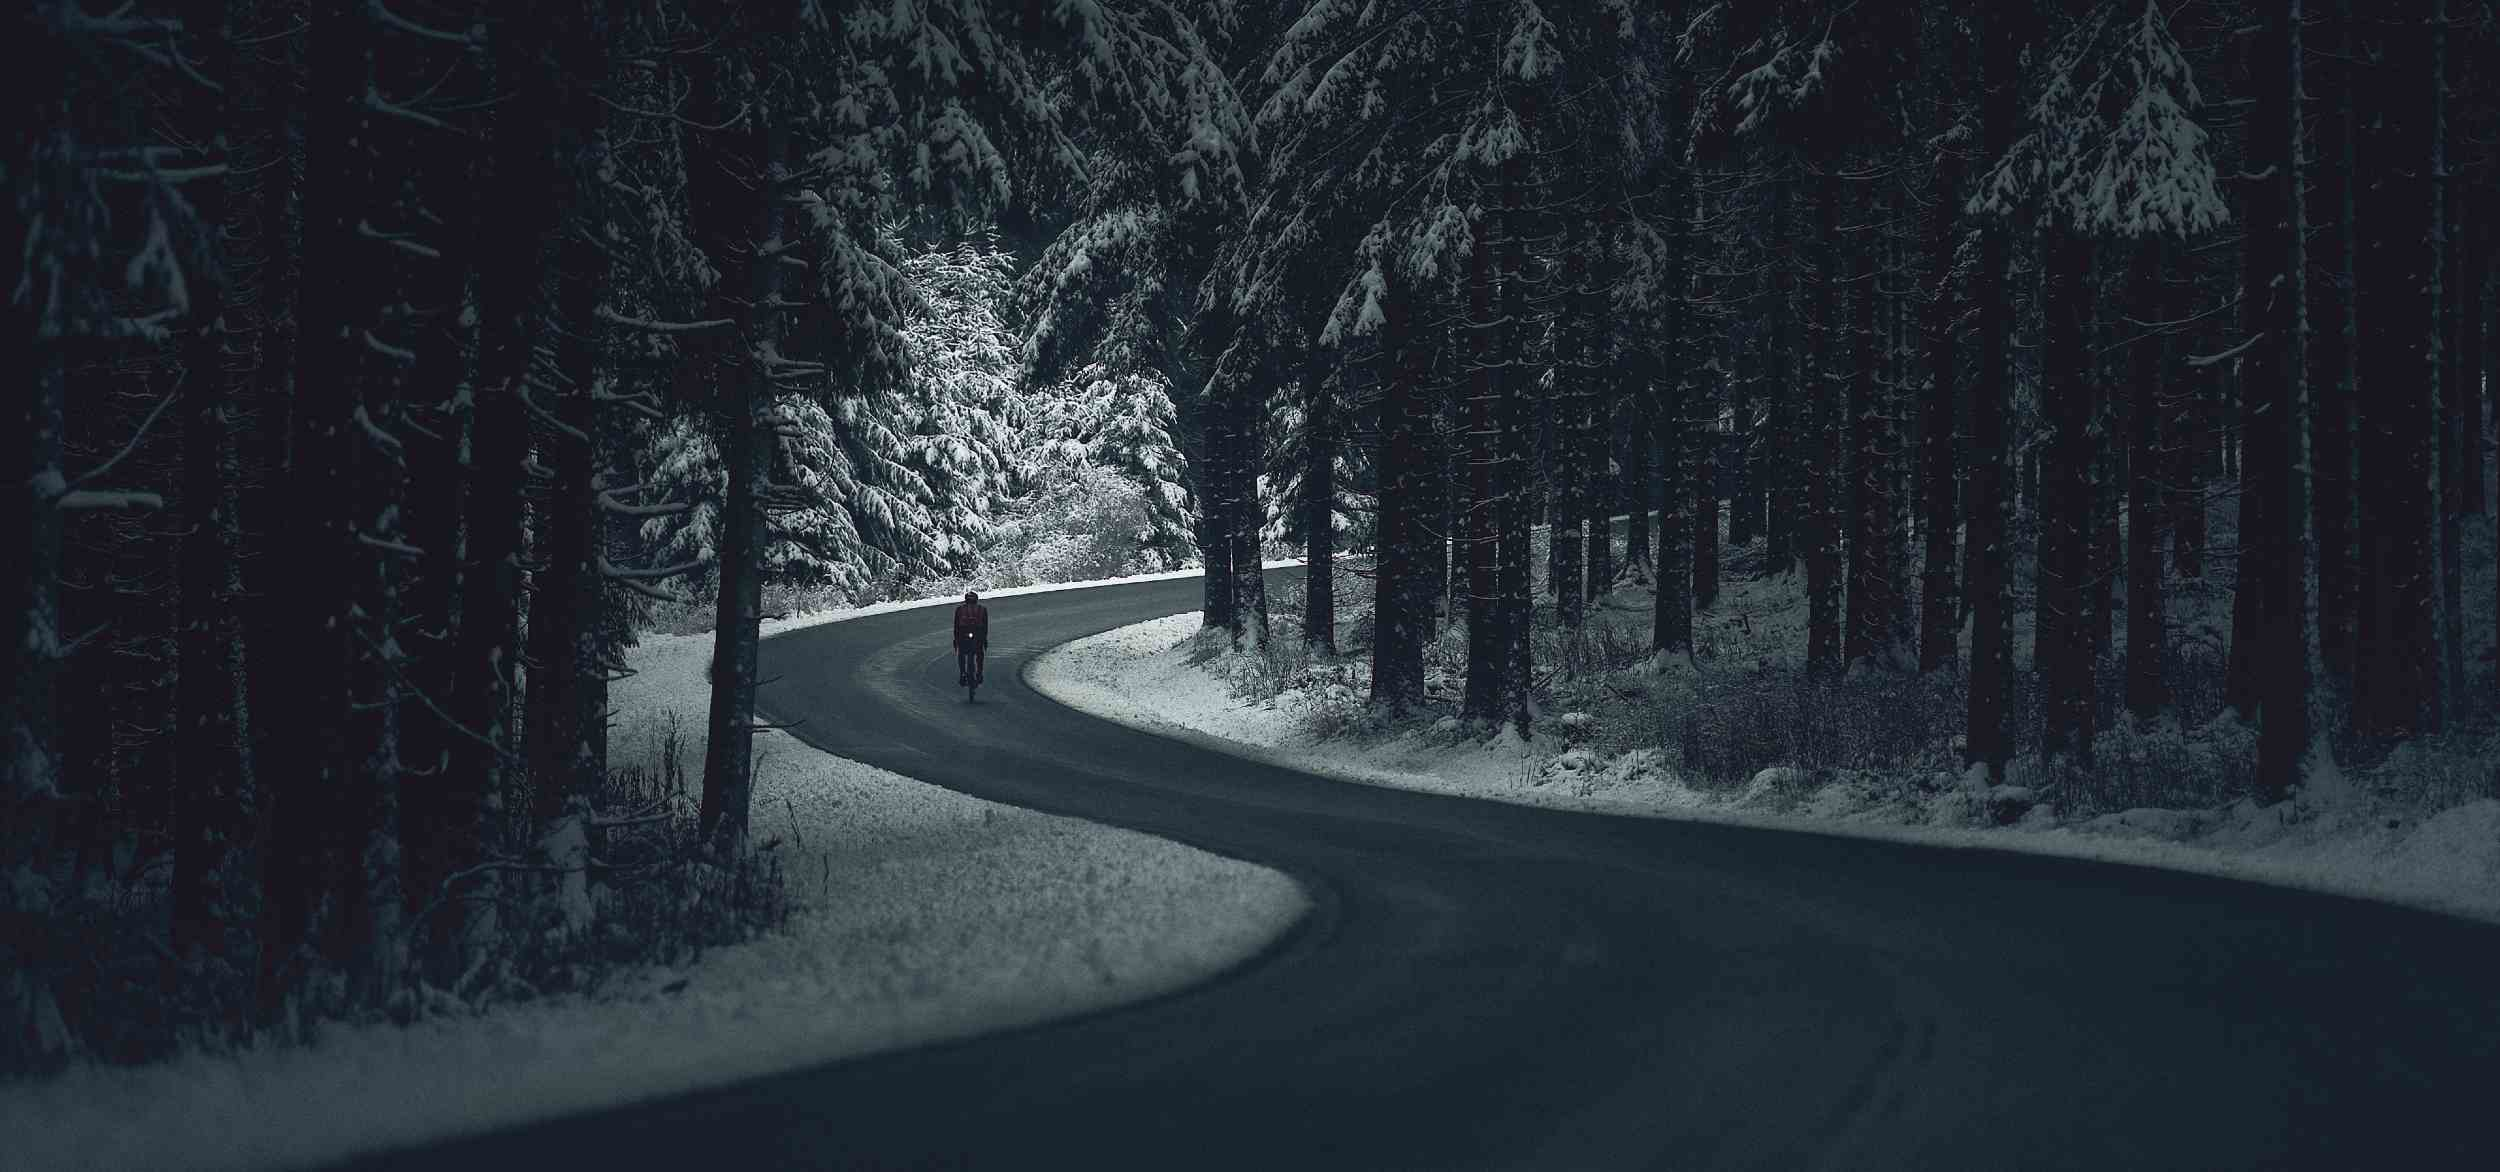 A road with a cyclist in the middle of a snowy forest in the night